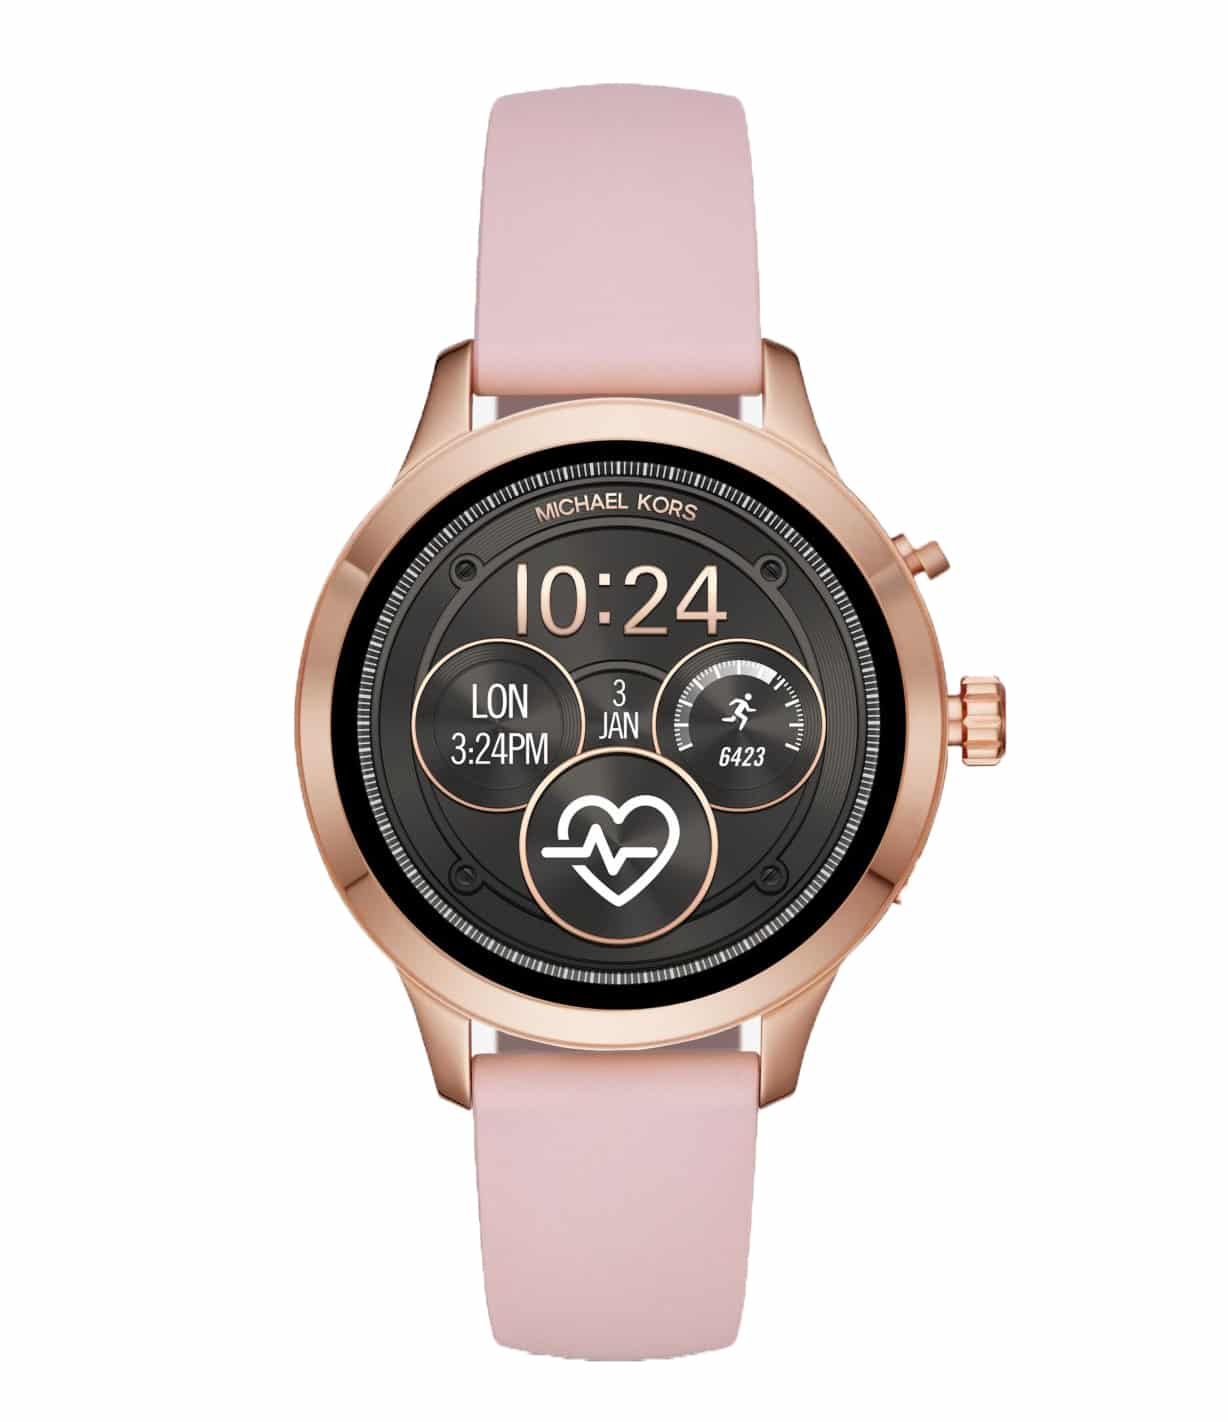 Best Smartwatch For Women 7 Stylish Female Models For 2019